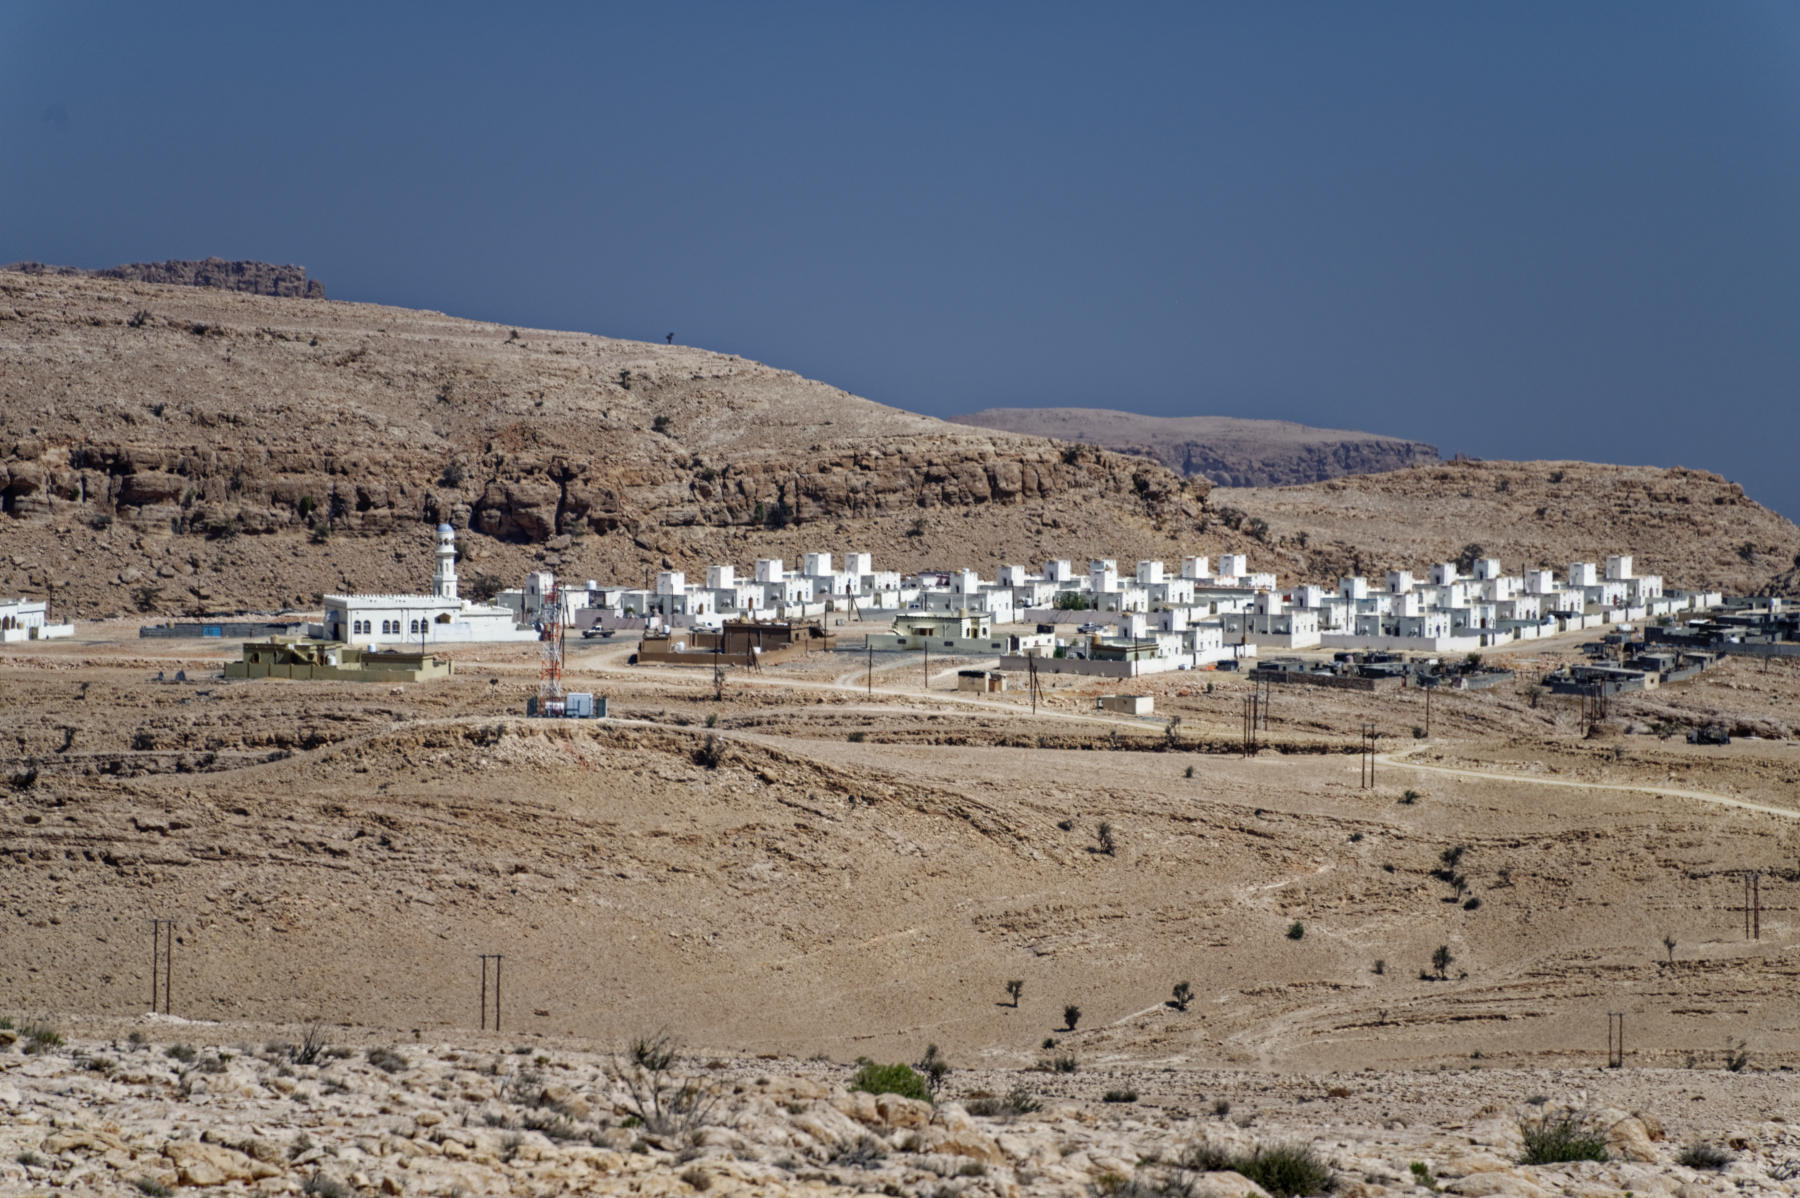 Government-built housing in Hajar mountains